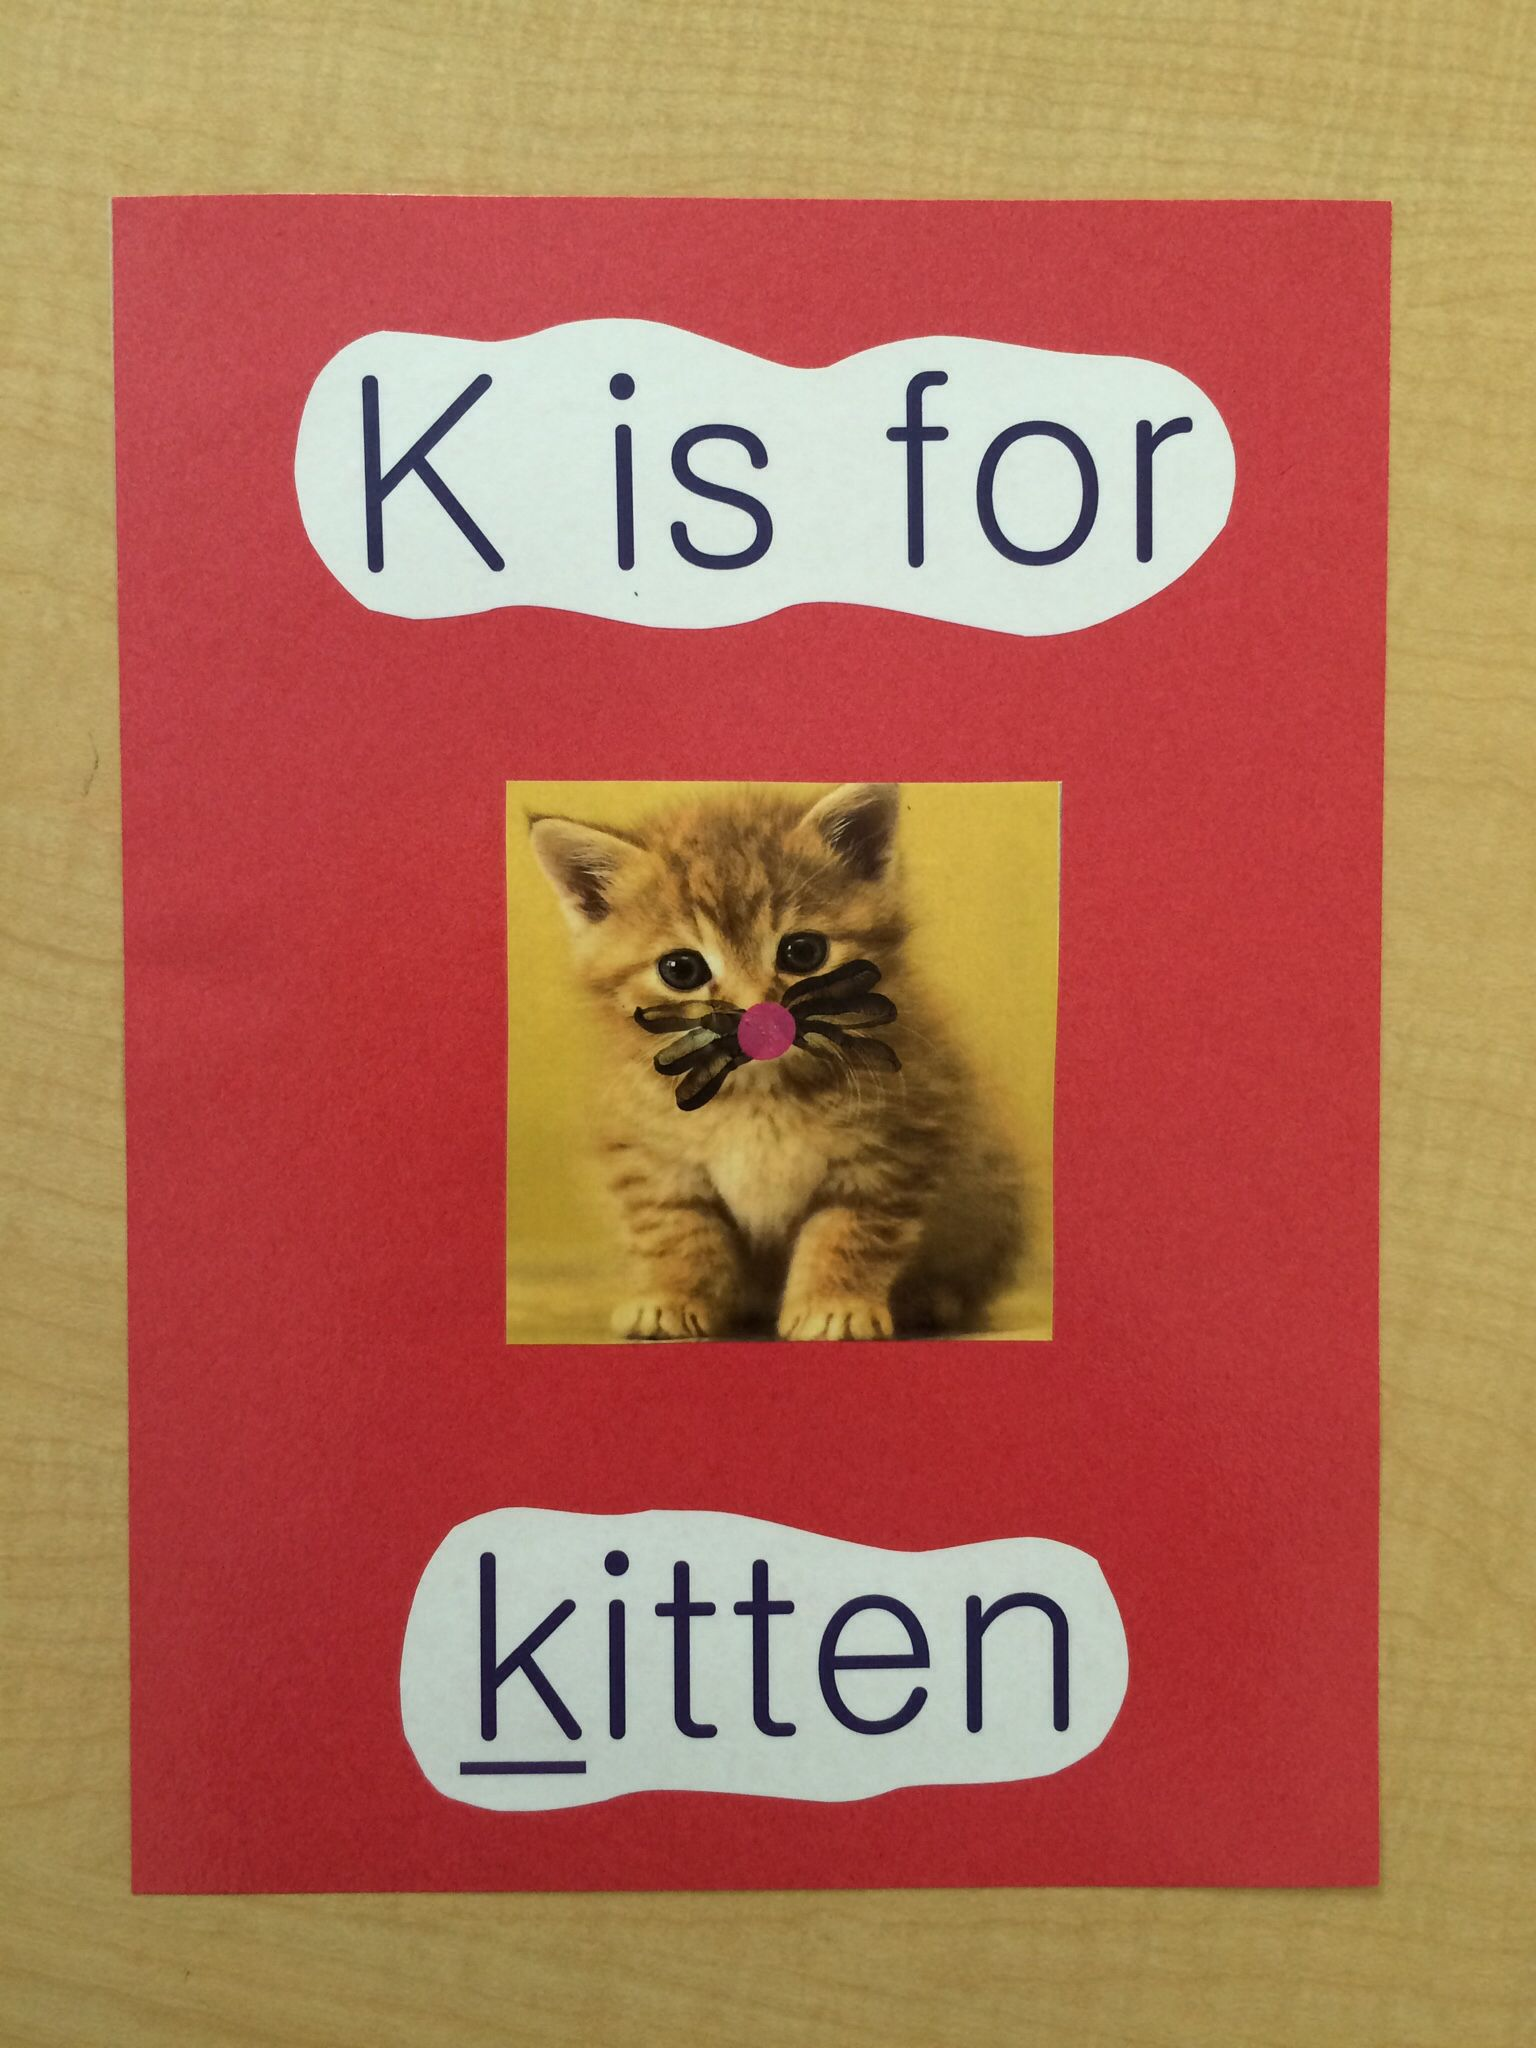 K Is For Kitten Students Used Fingers To Make Whiskers And Nose Kittens Lettering Letter K